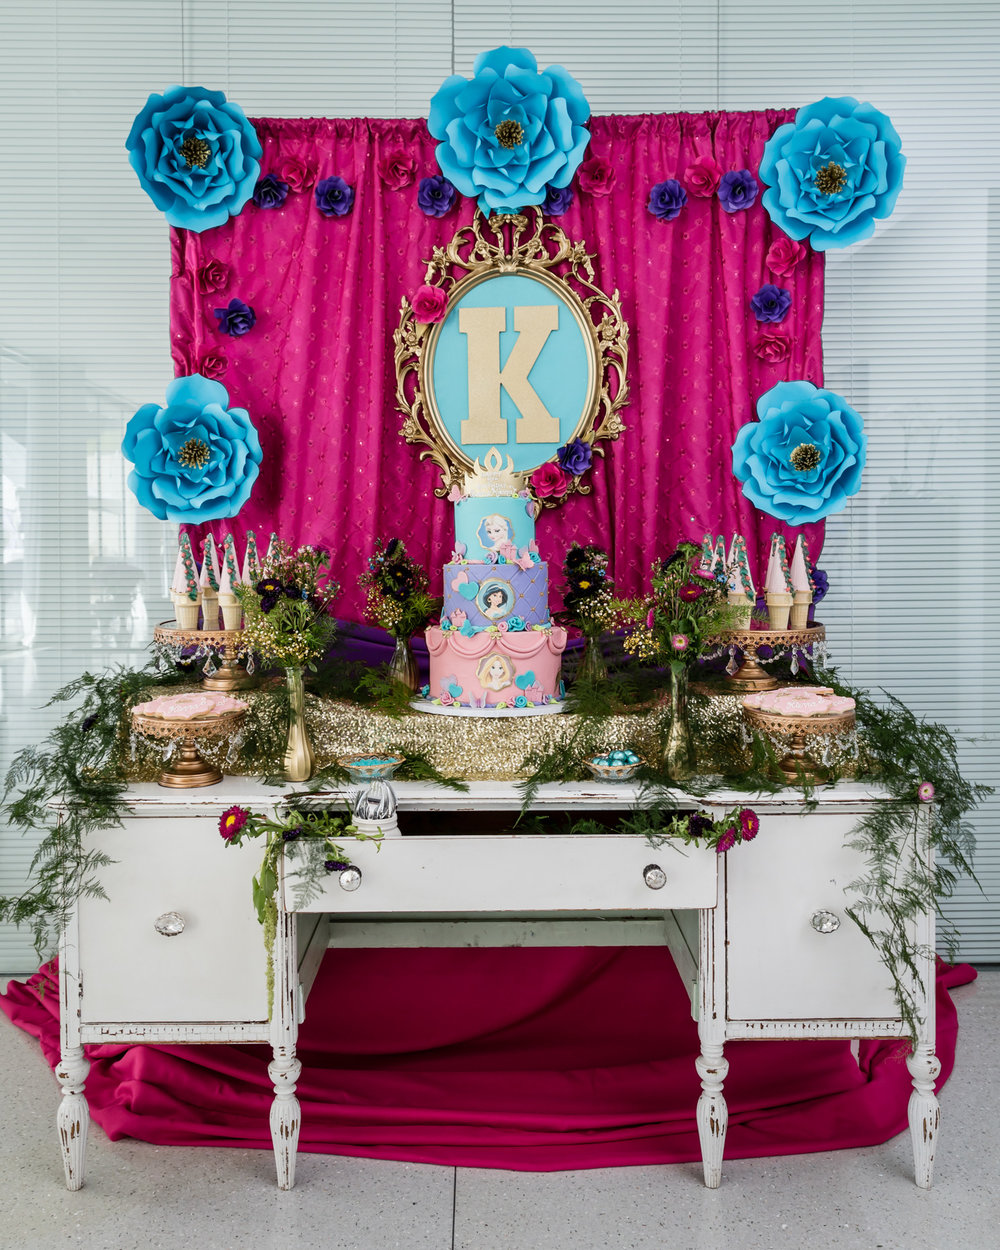 vintage inspired disney princess custom cake dessert table beverly hills .jpg